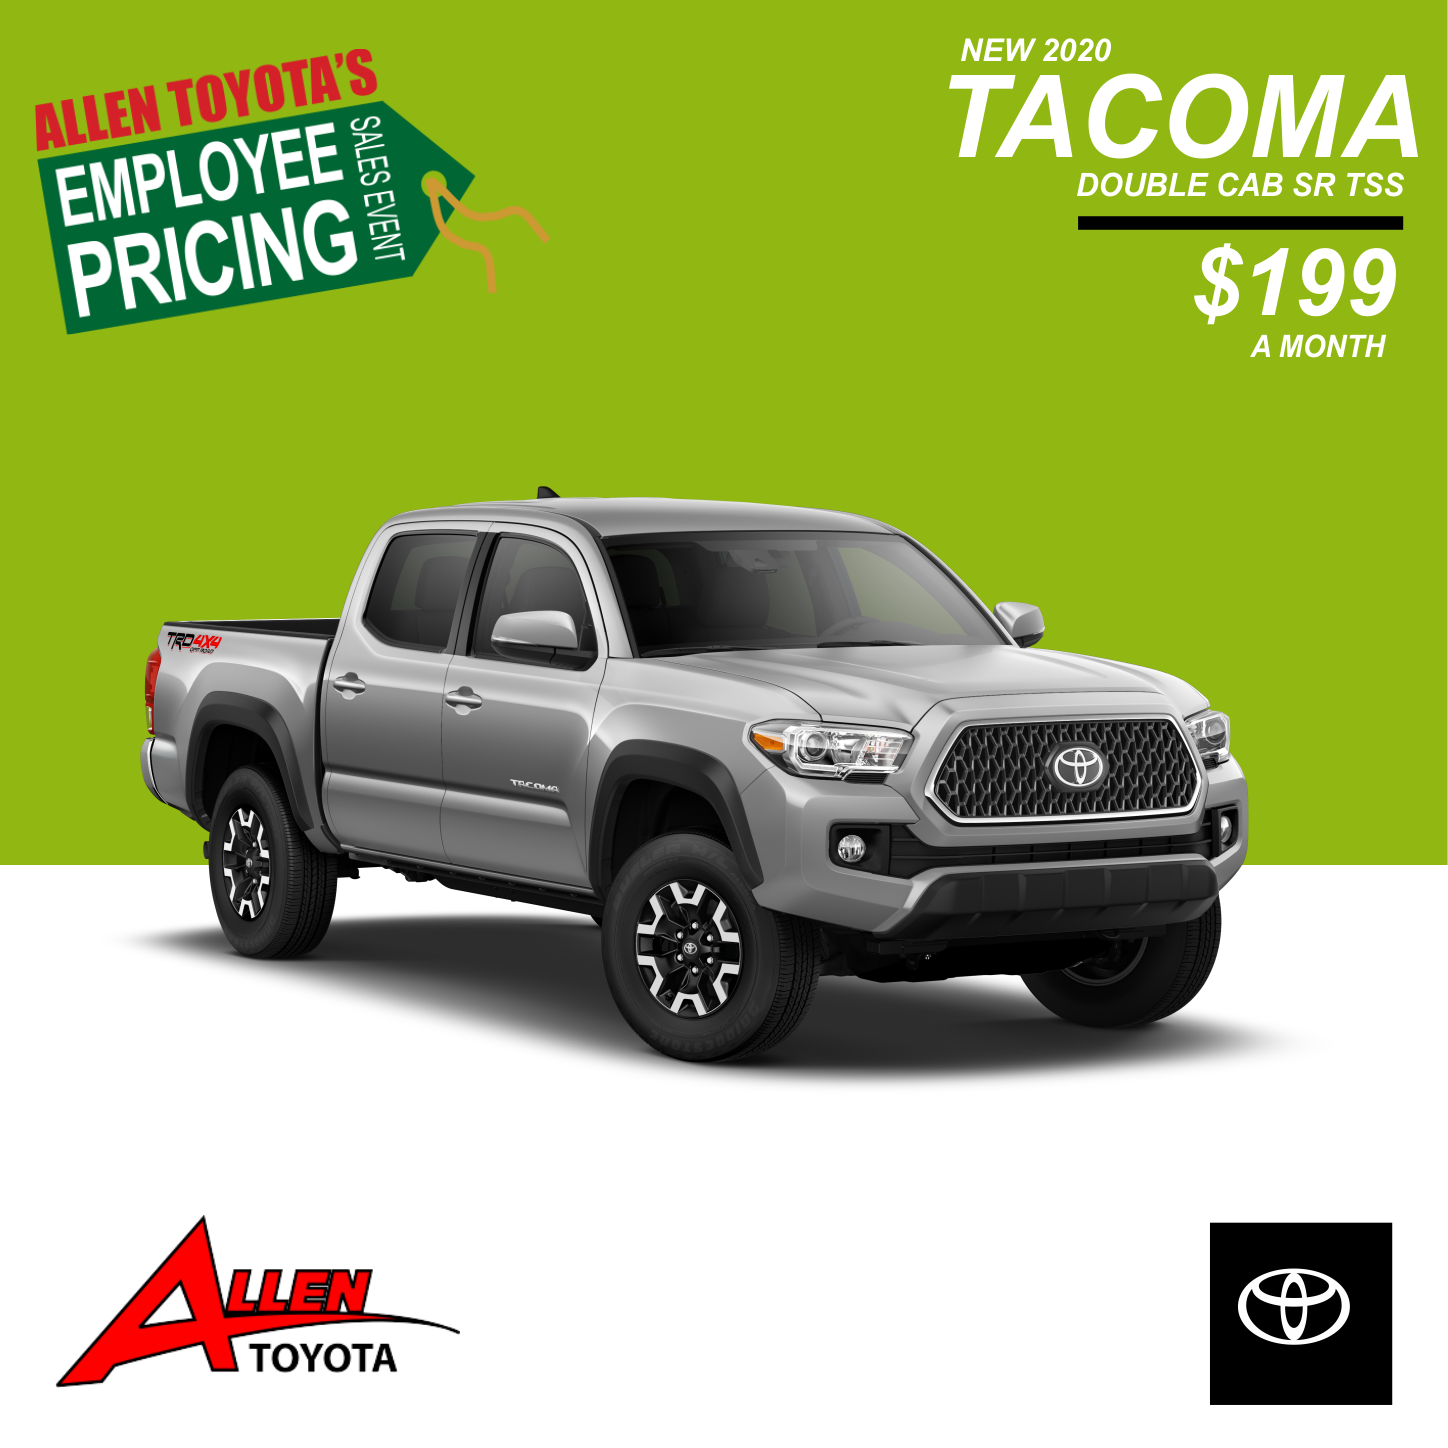 Lease a New Tacoma $199 a month!